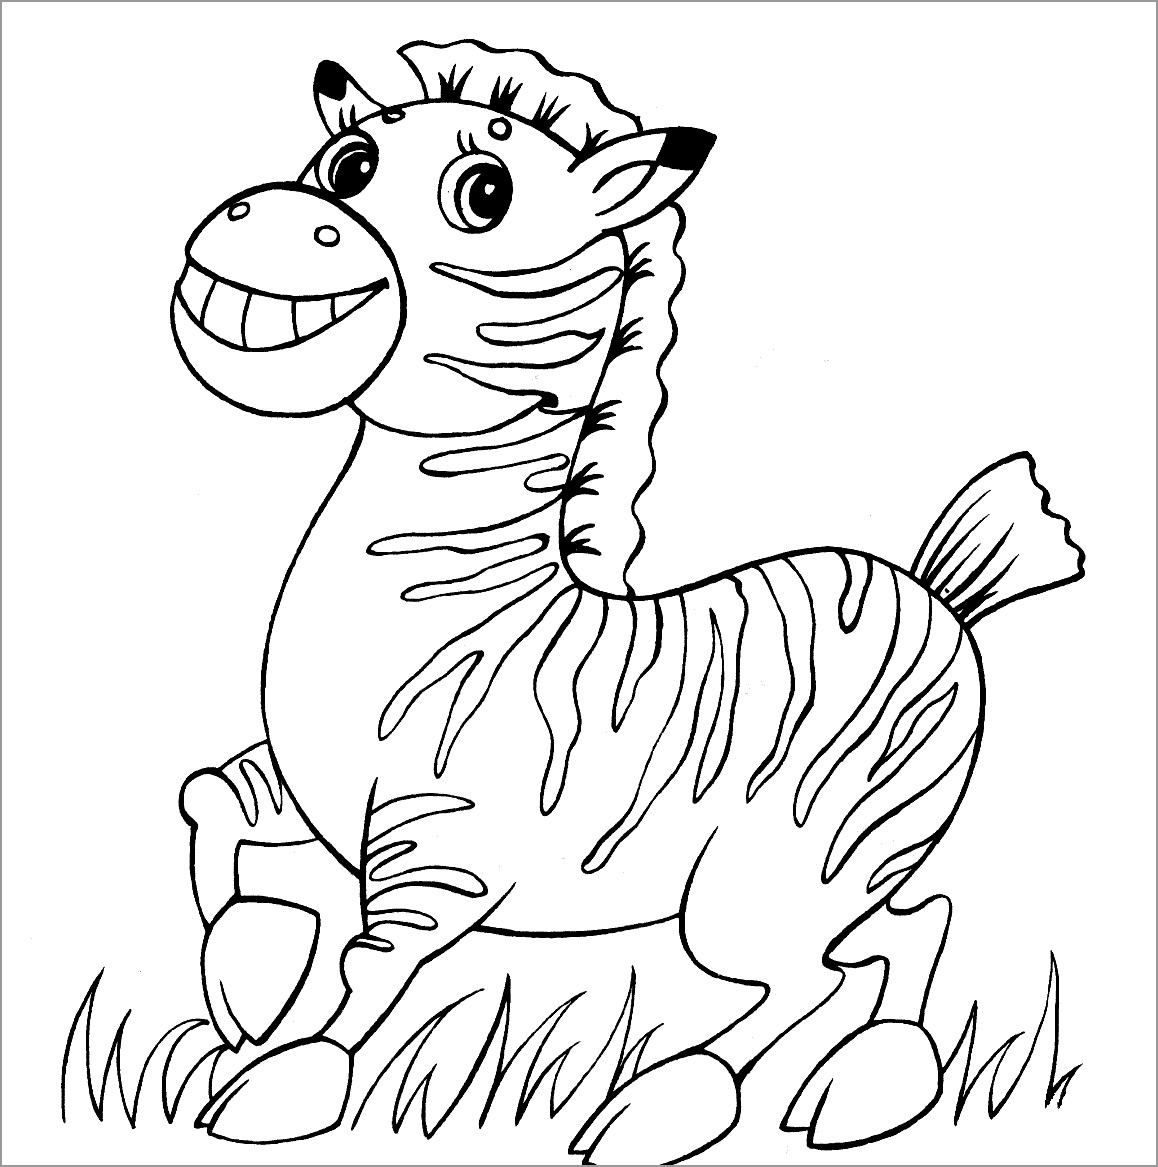 Zebra Coloring Page Image